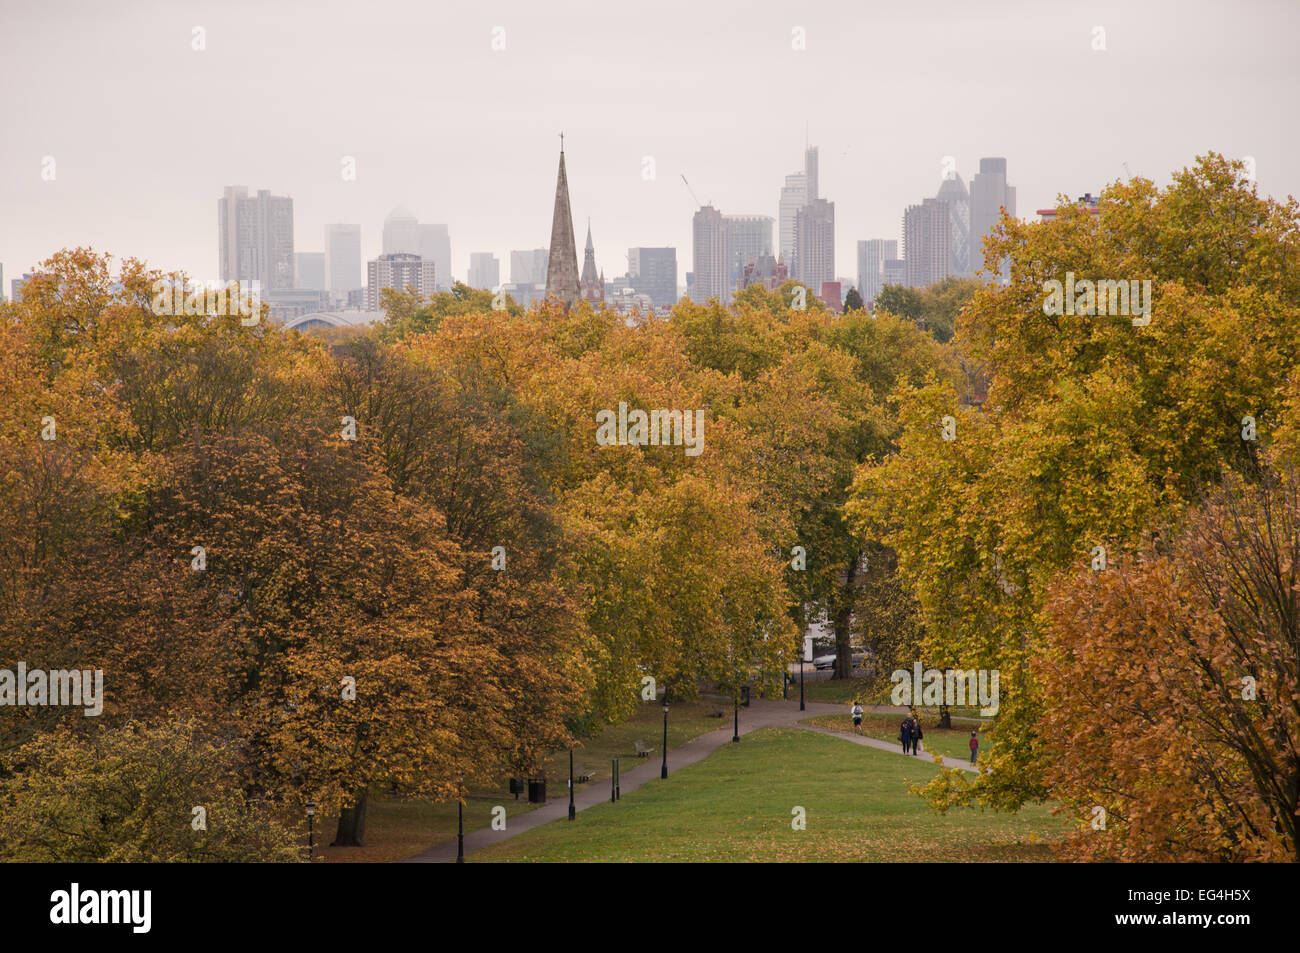 Autumn (fall) in Primrose Hill Park, London, England - Stock Image